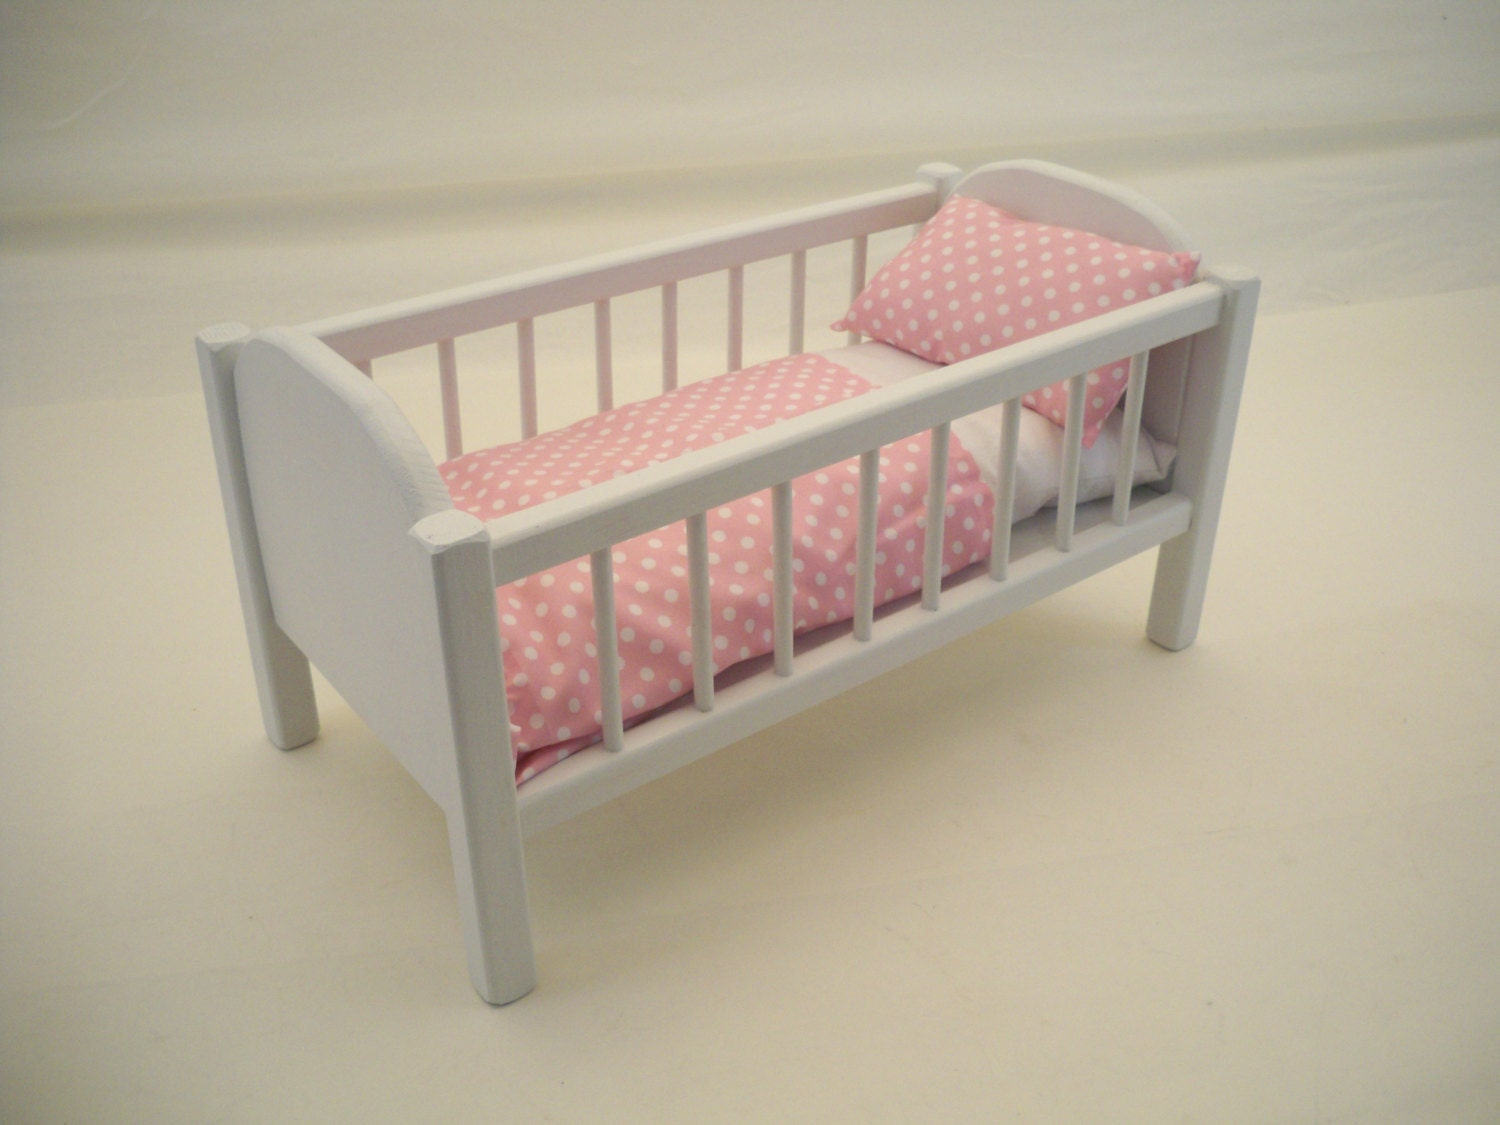 in product master bunk beds hayneedle doll with baskets badger storage white rose convertible cfm basket for bed